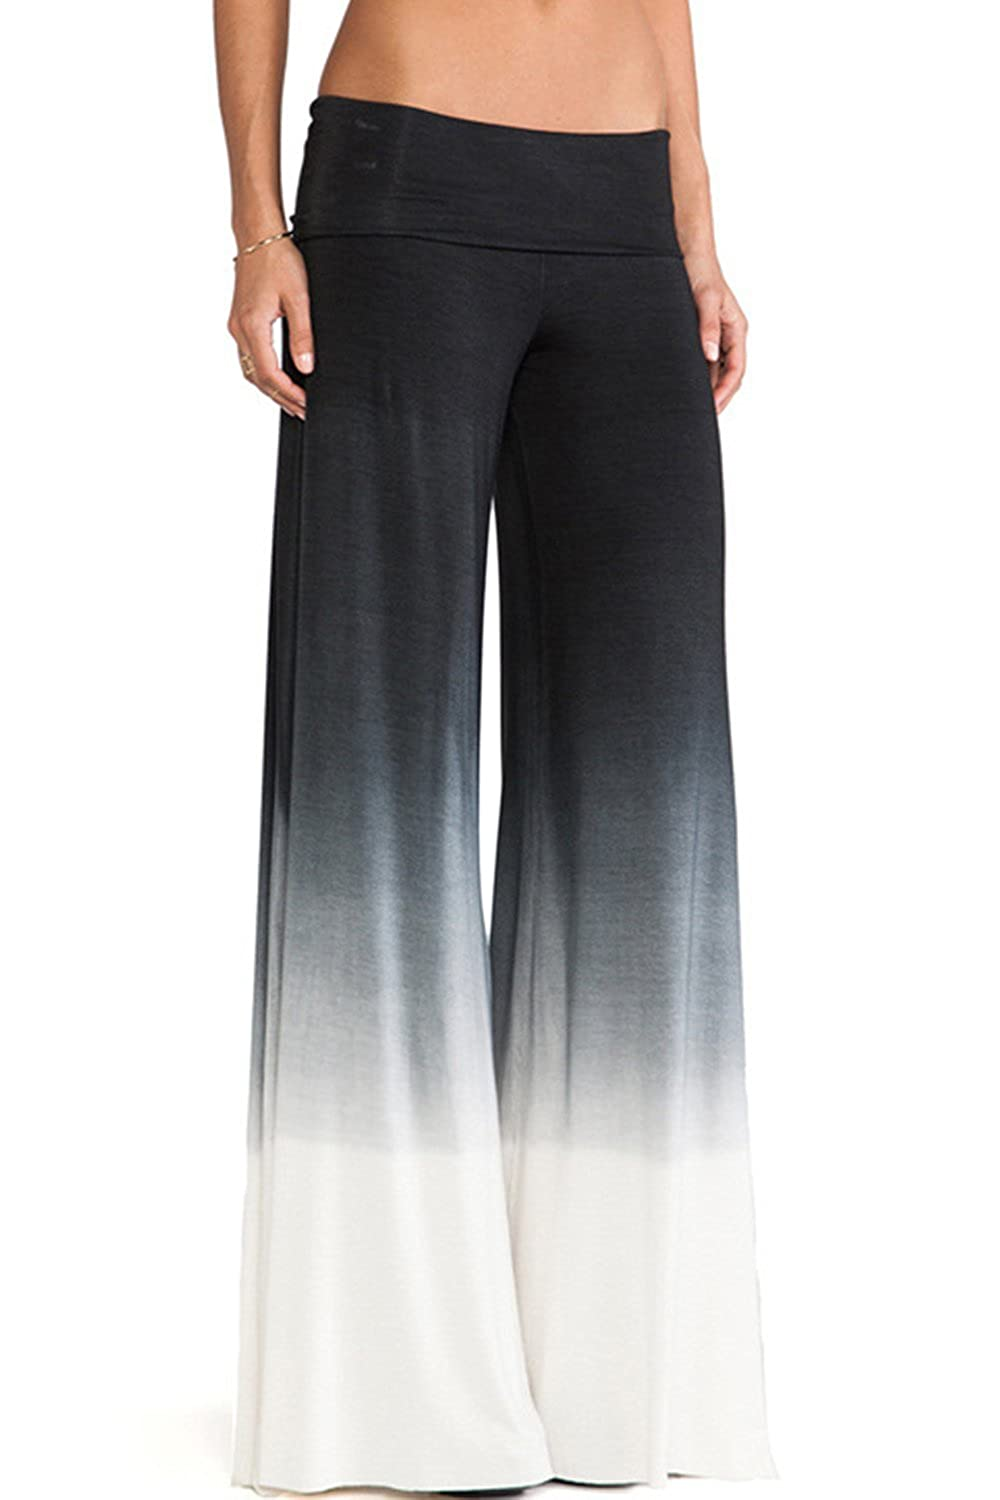 Women's Elegant Colorblock Wide Leg High Fold Over Waist Palazzo Pants